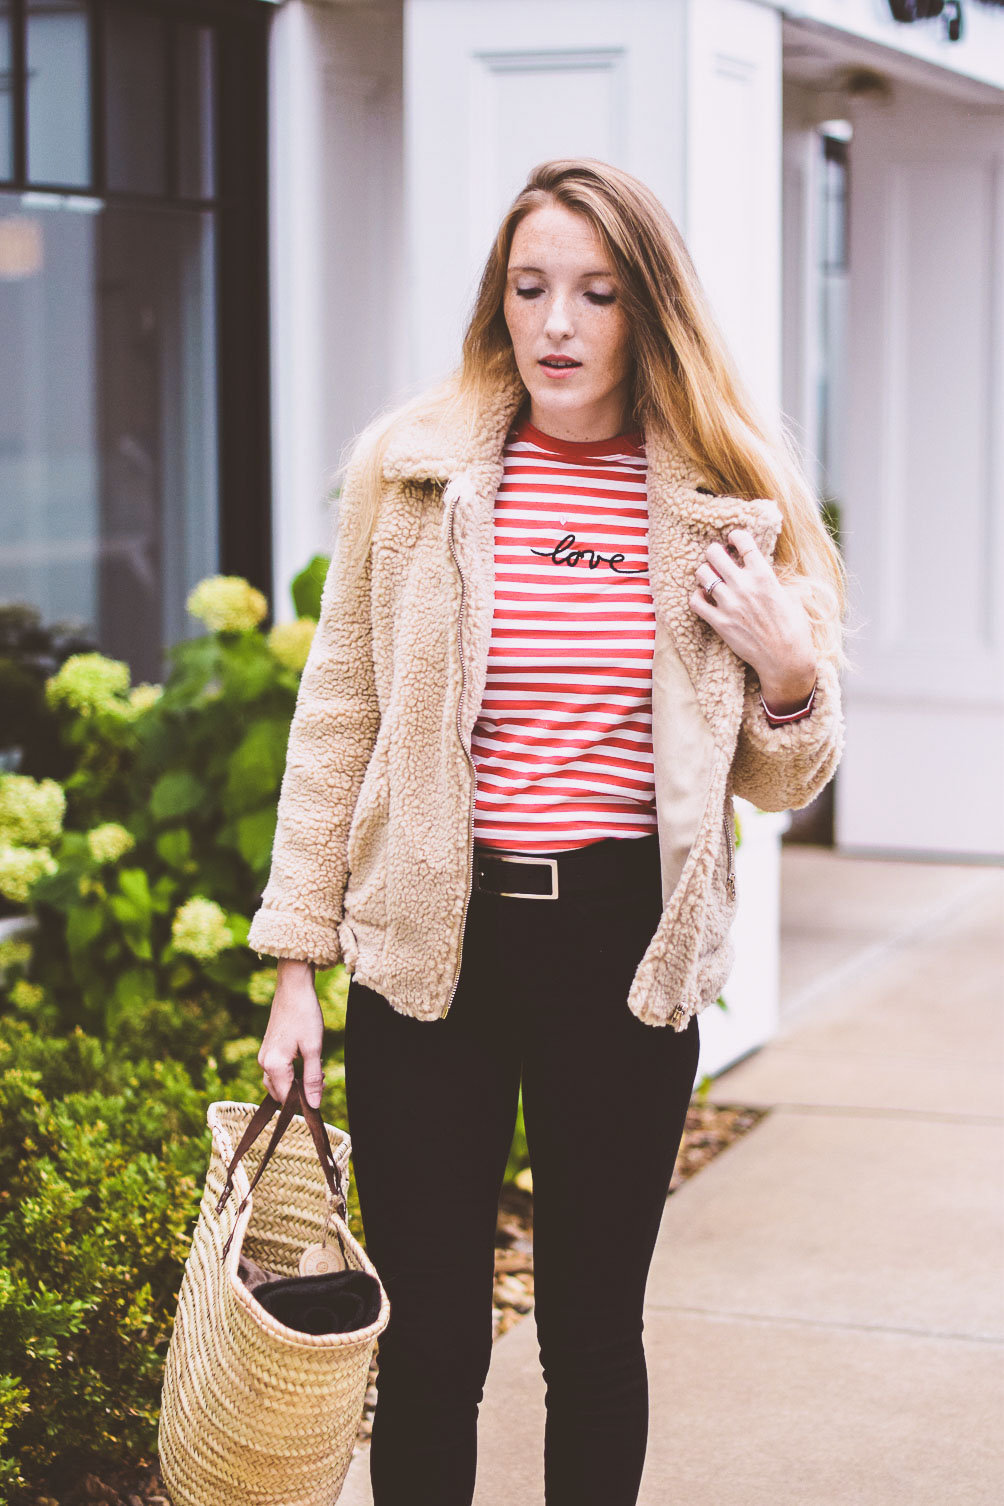 styling a teddy bear jacket as the best outerwear option for winter with a striped top and black skinny jeans